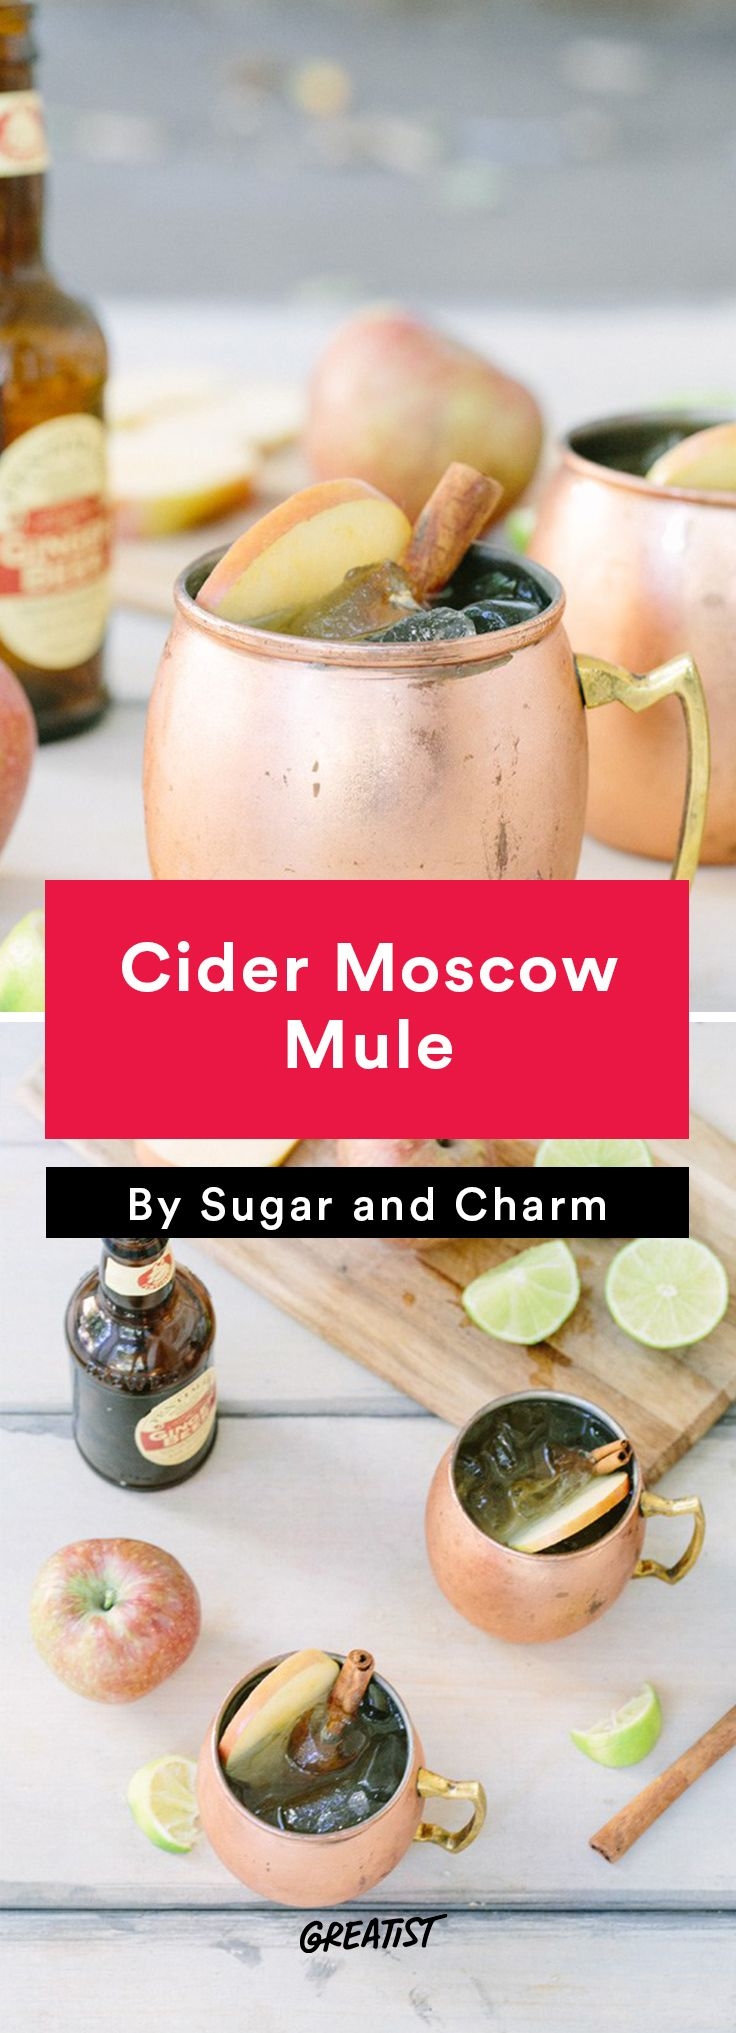 6. Cider Moscow Mule #apple #cocktails http://greatist.com/eat/apple-cocktail-recipes